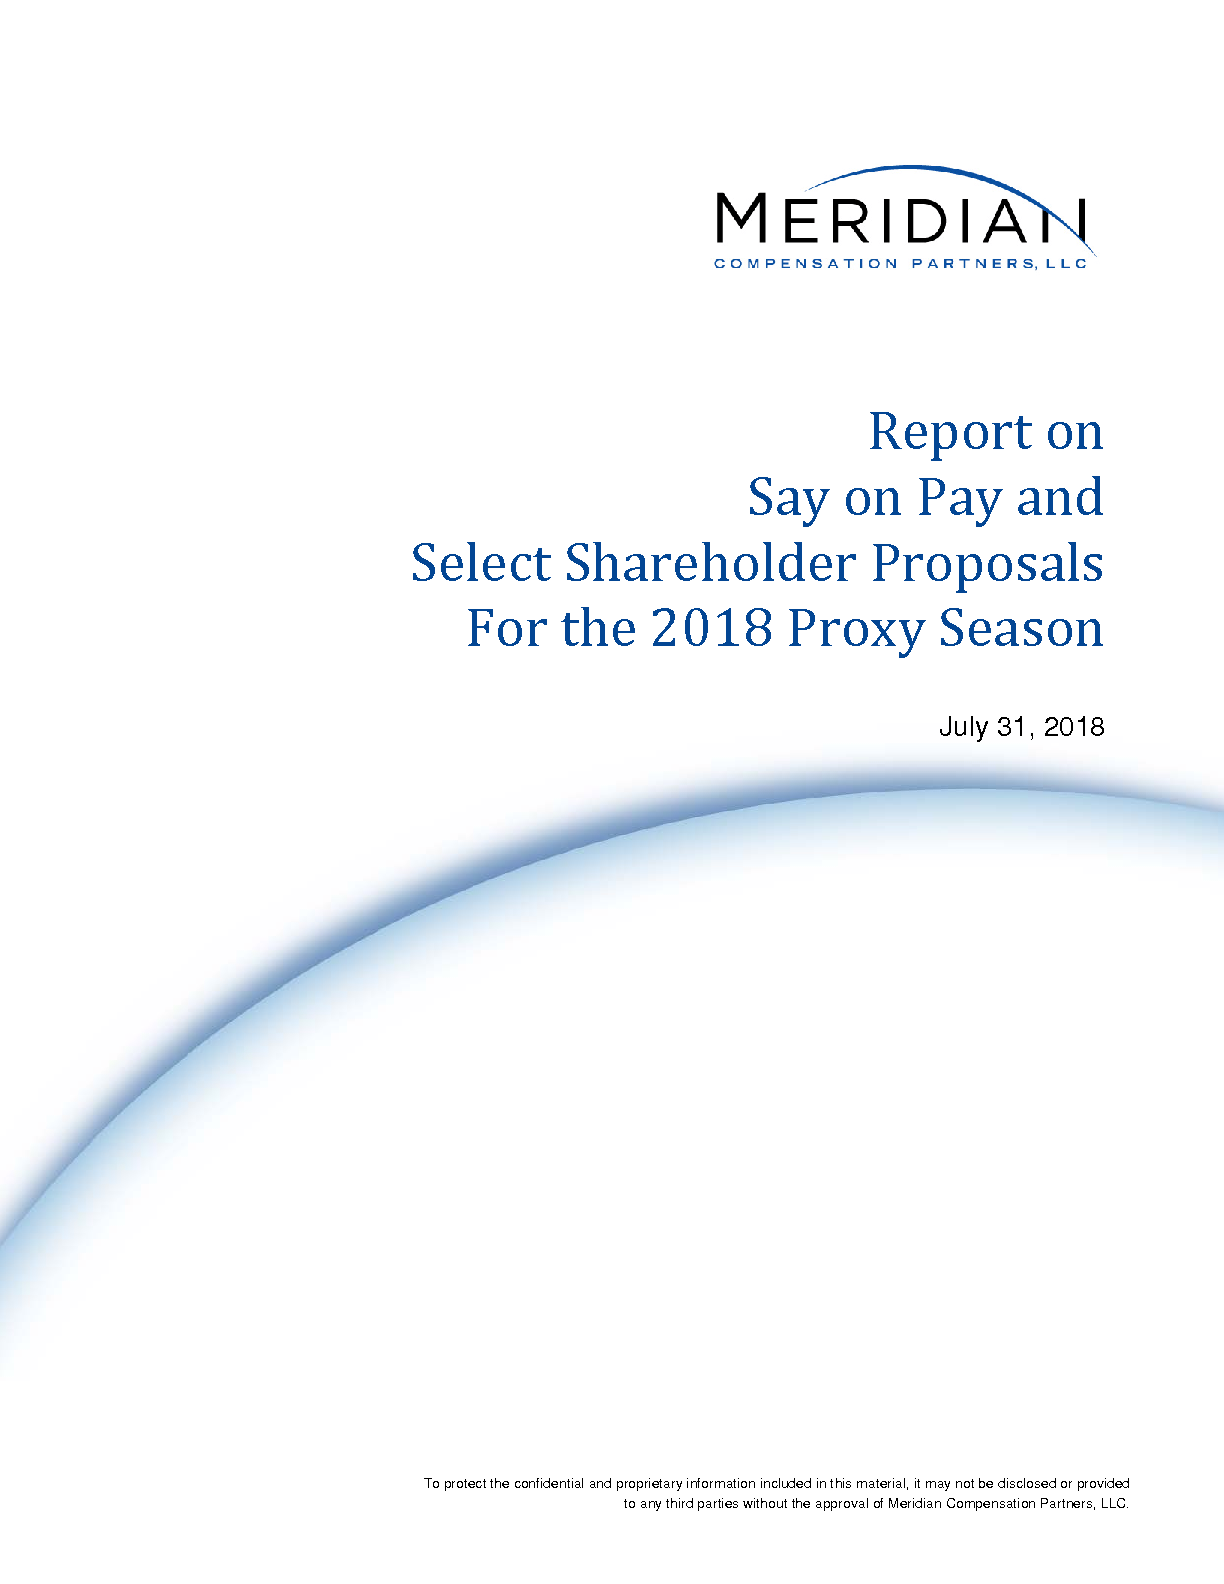 Report on Say on Pay and Select Shareholder Proposals For